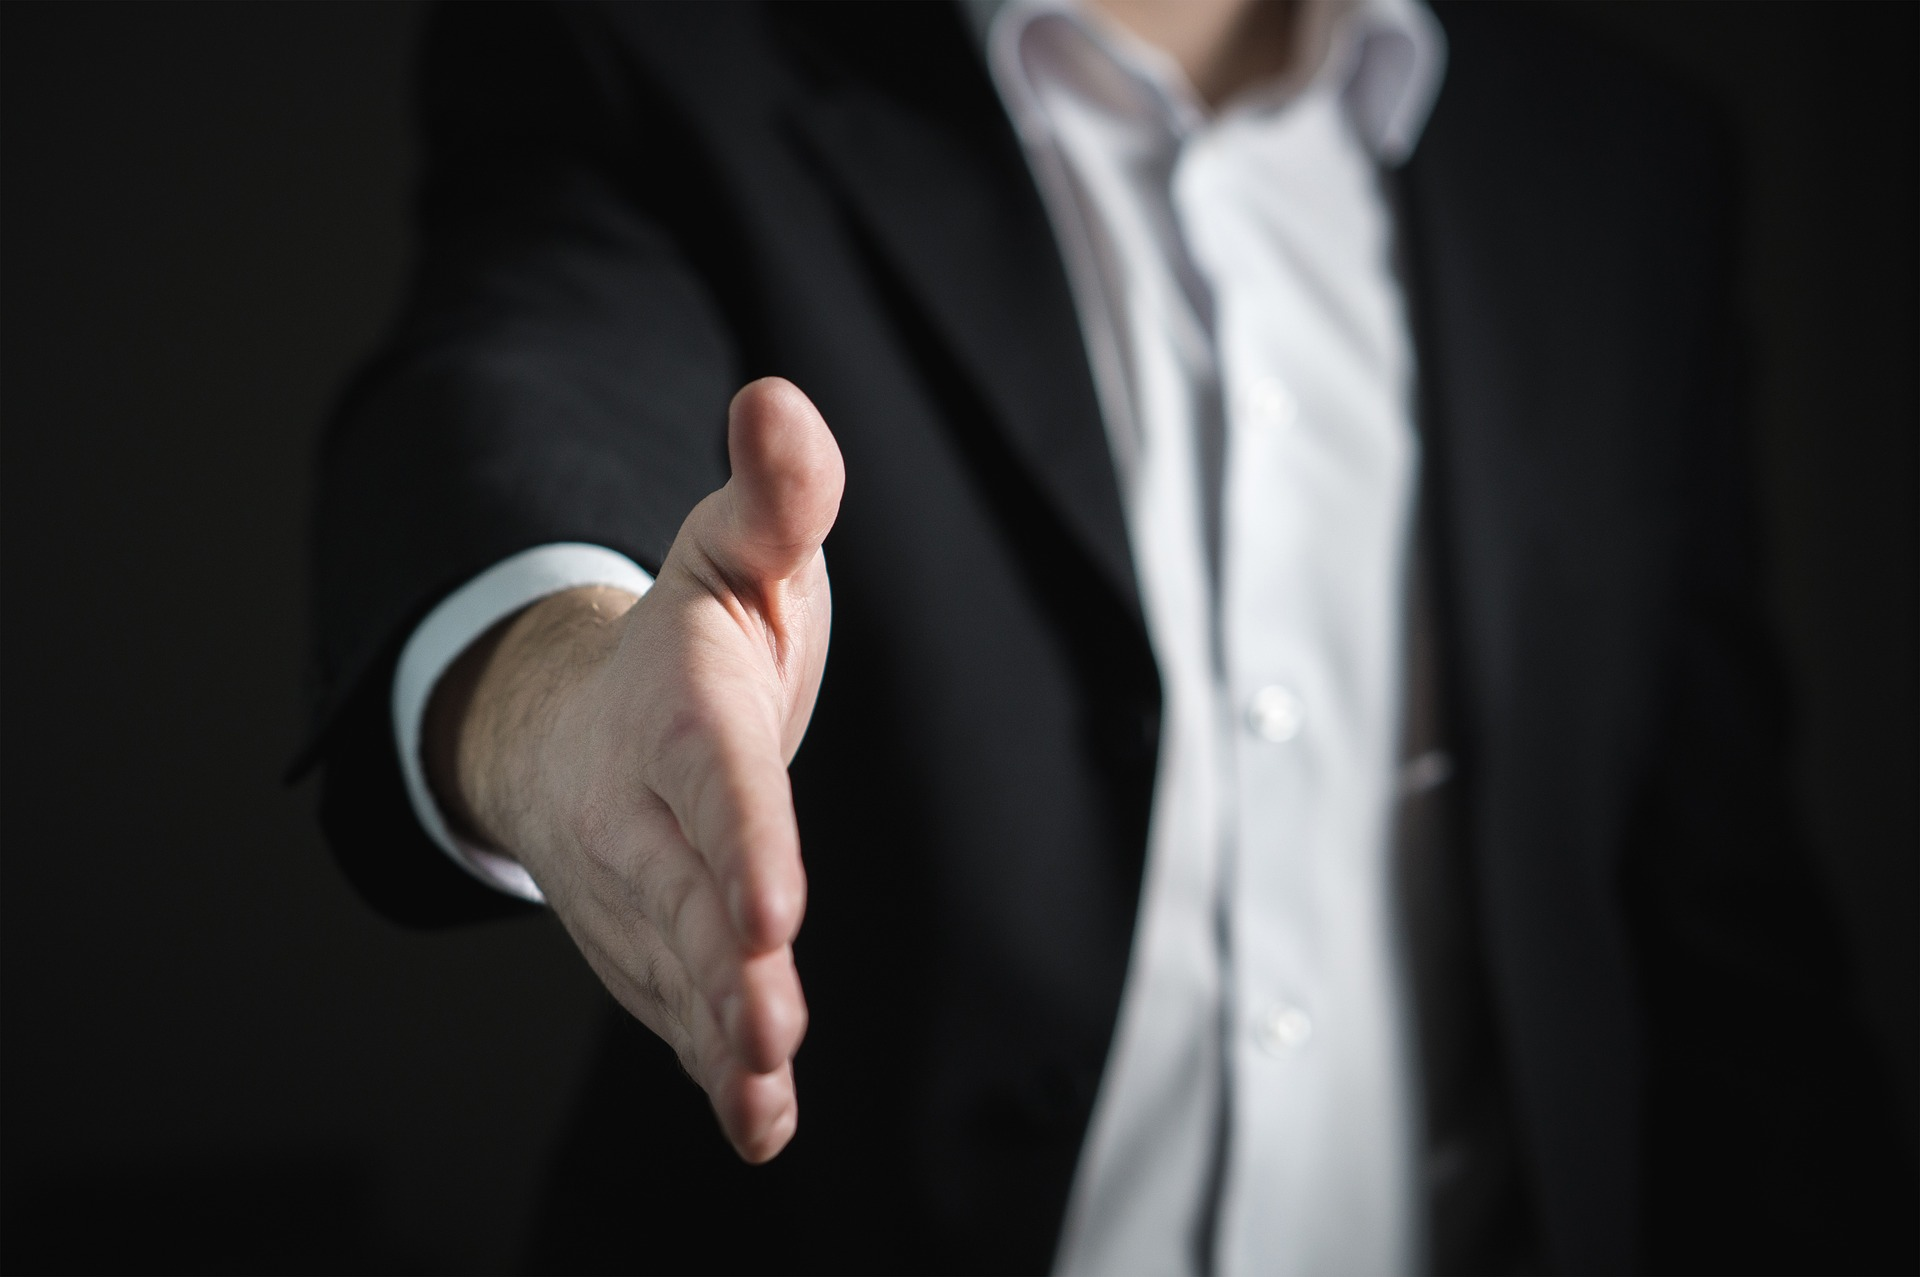 Man reaching out to shake hand. He is wearing a suit to show how hiring a realtor needs to dress the part.